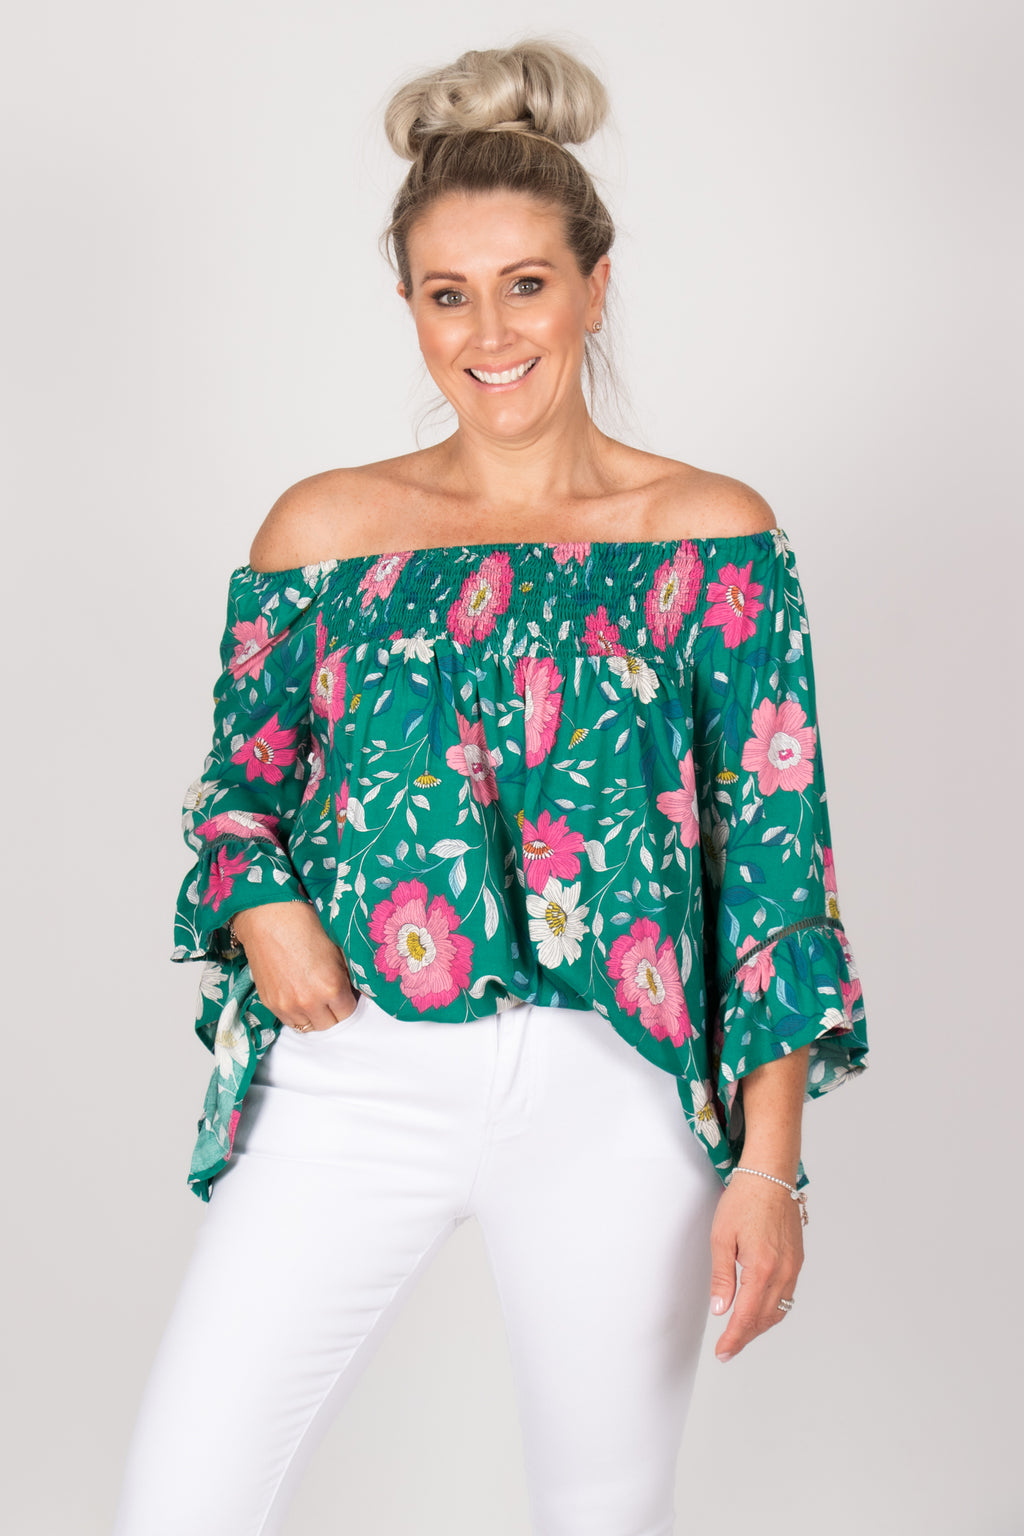 Beaches OTS Top in Turquoise/Pink